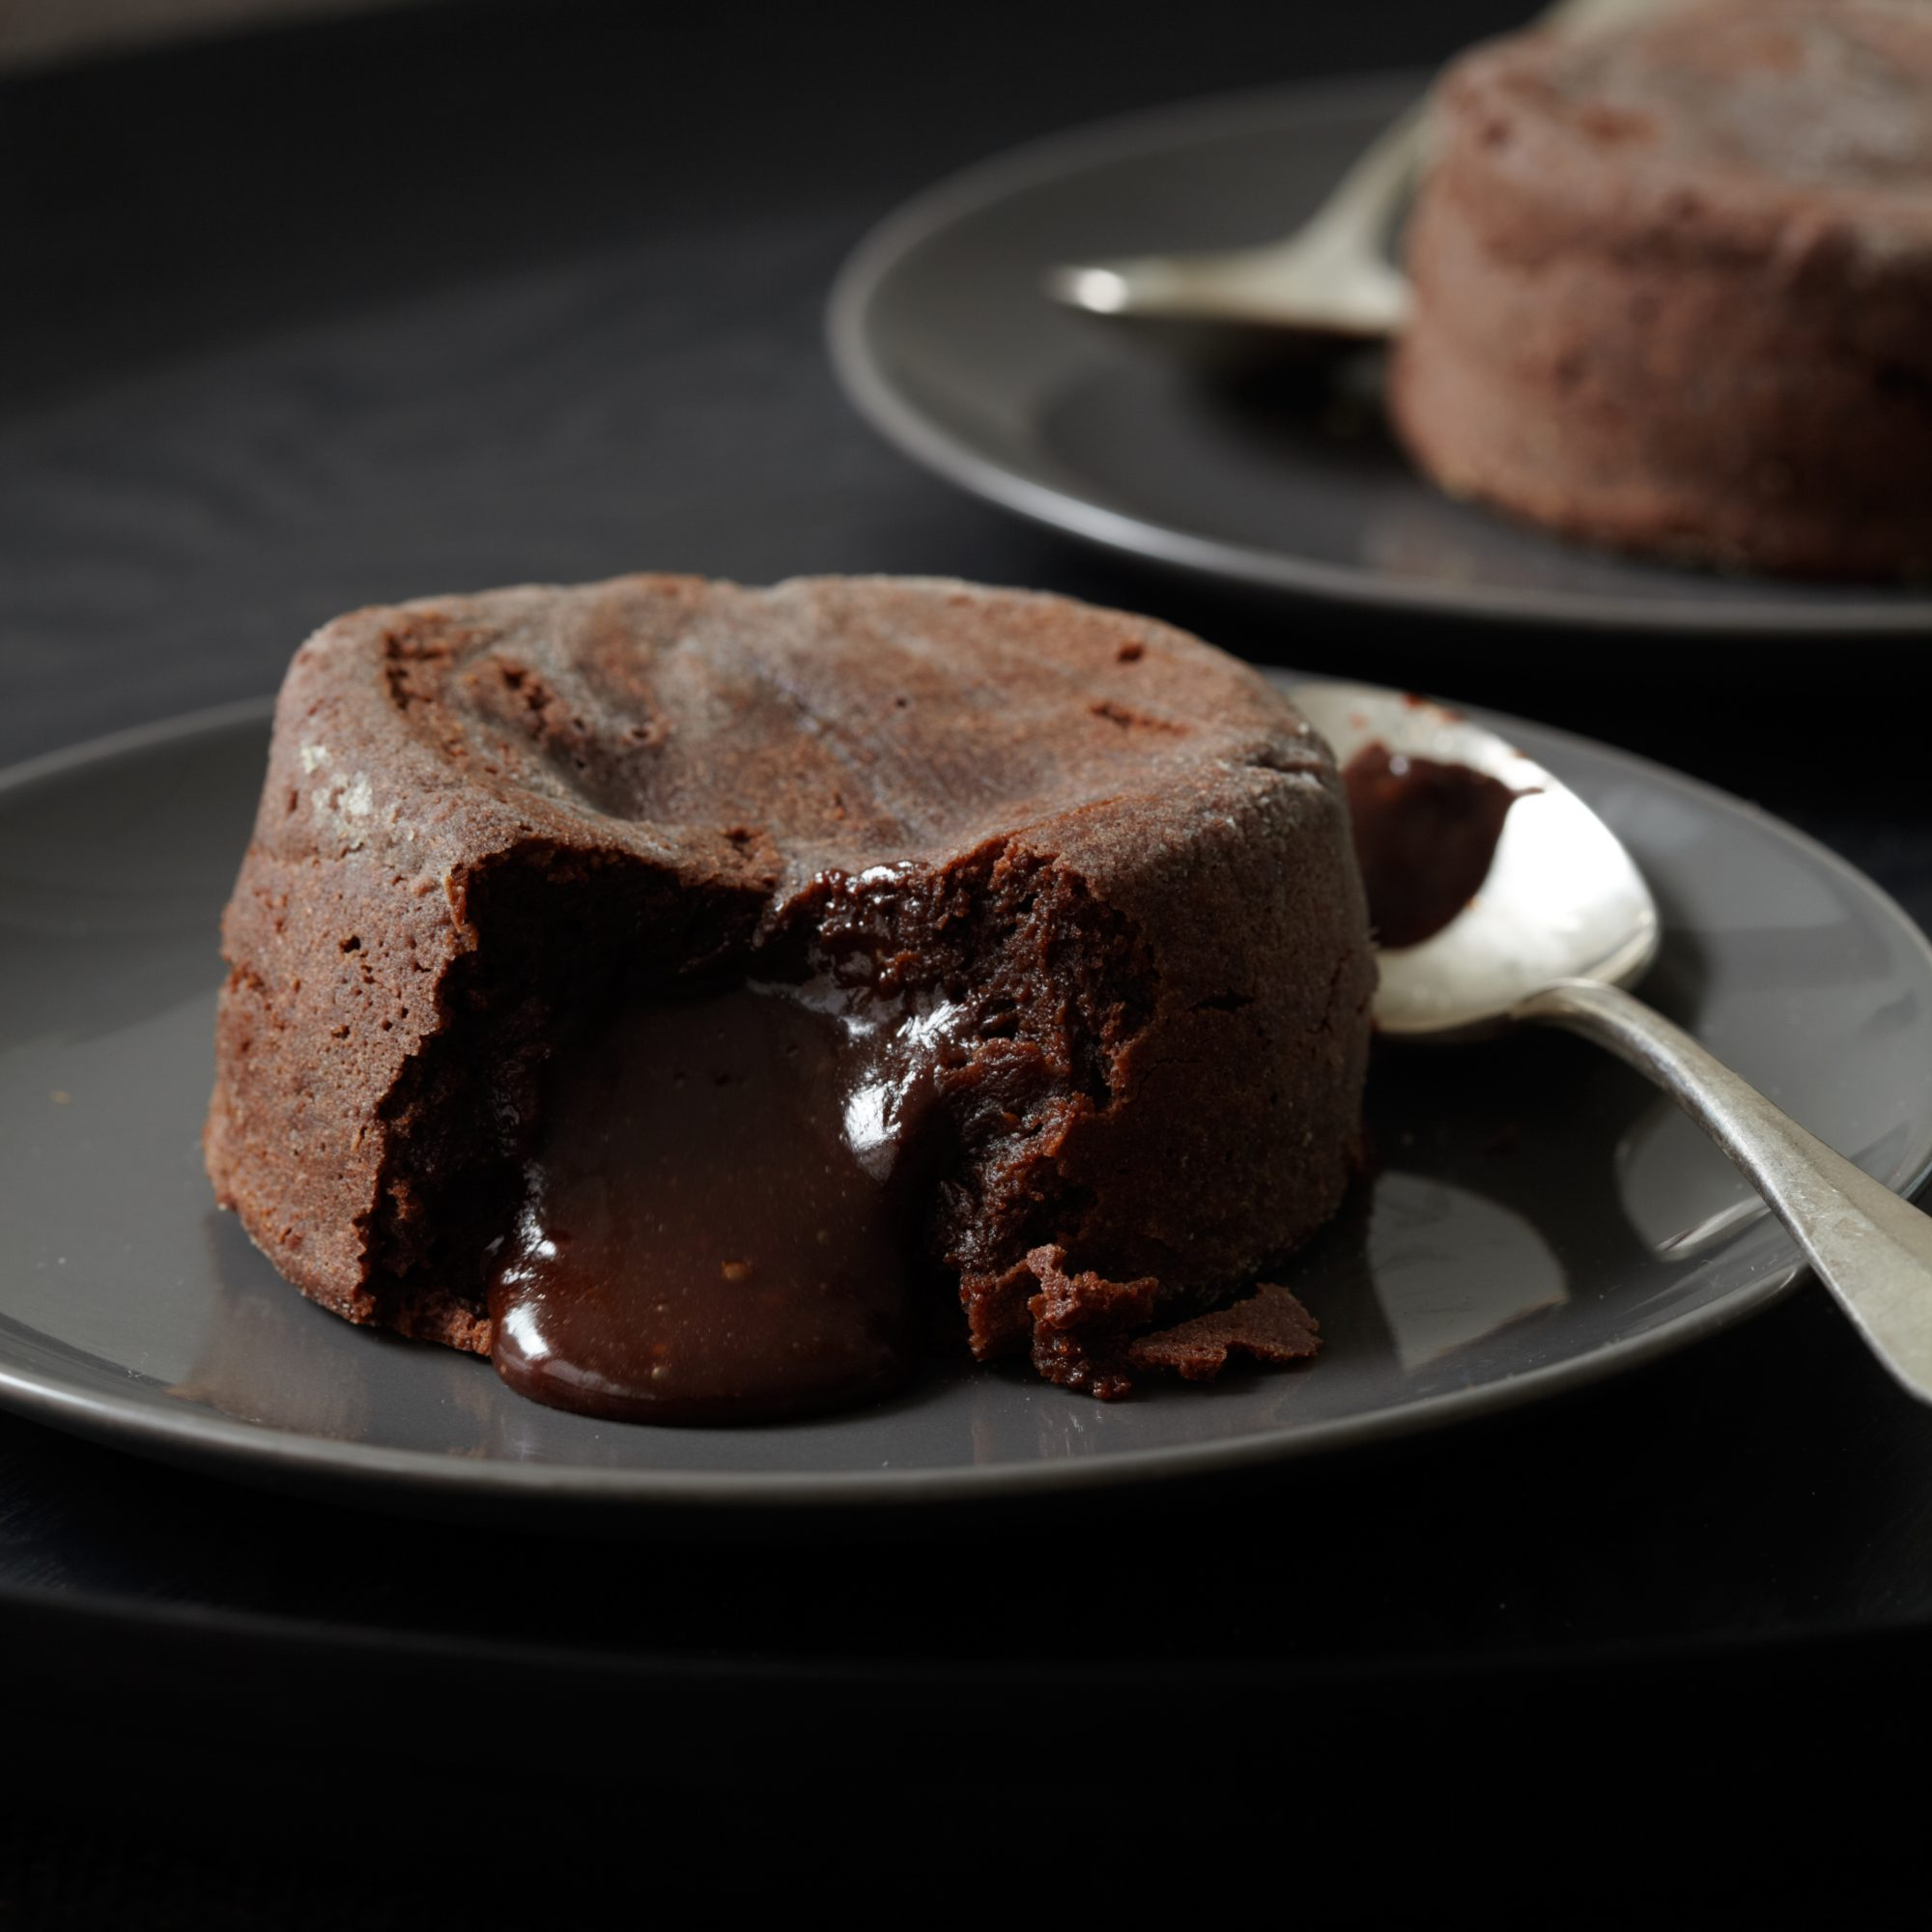 French Chocolate Fondant Cake